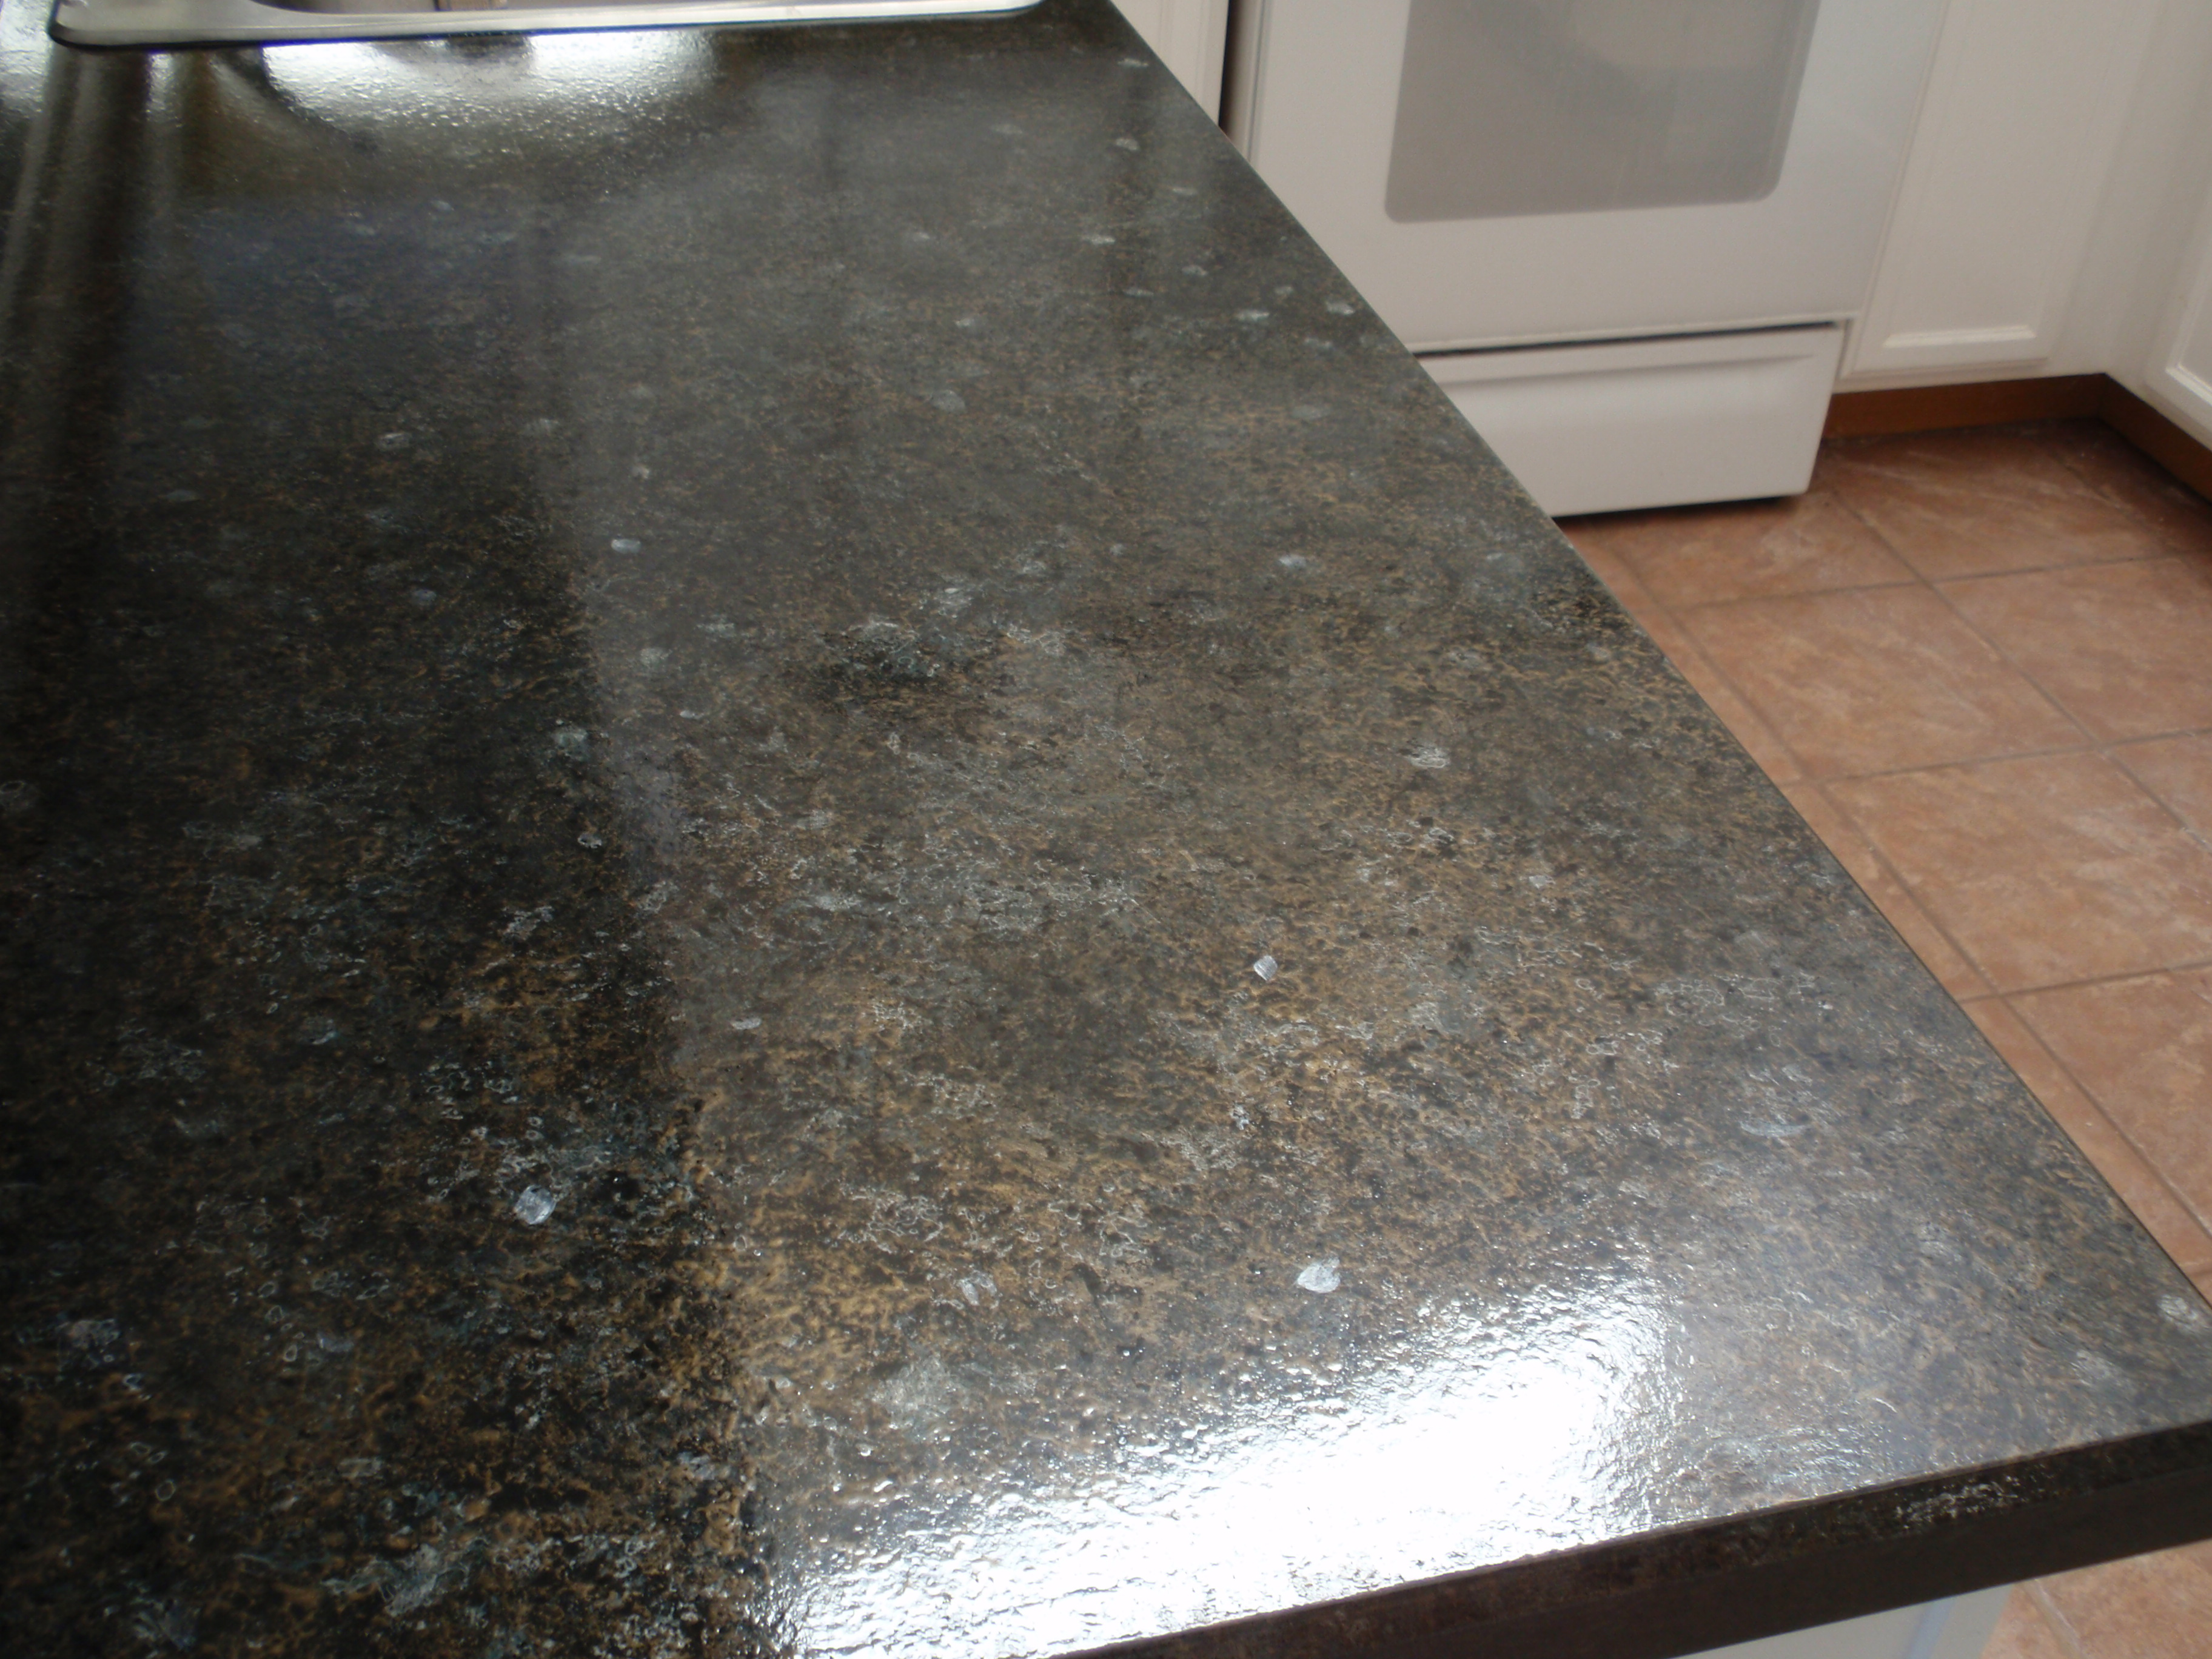 How To Restore Granite Countertops Faux Finishing And Painting Denver Co G Go